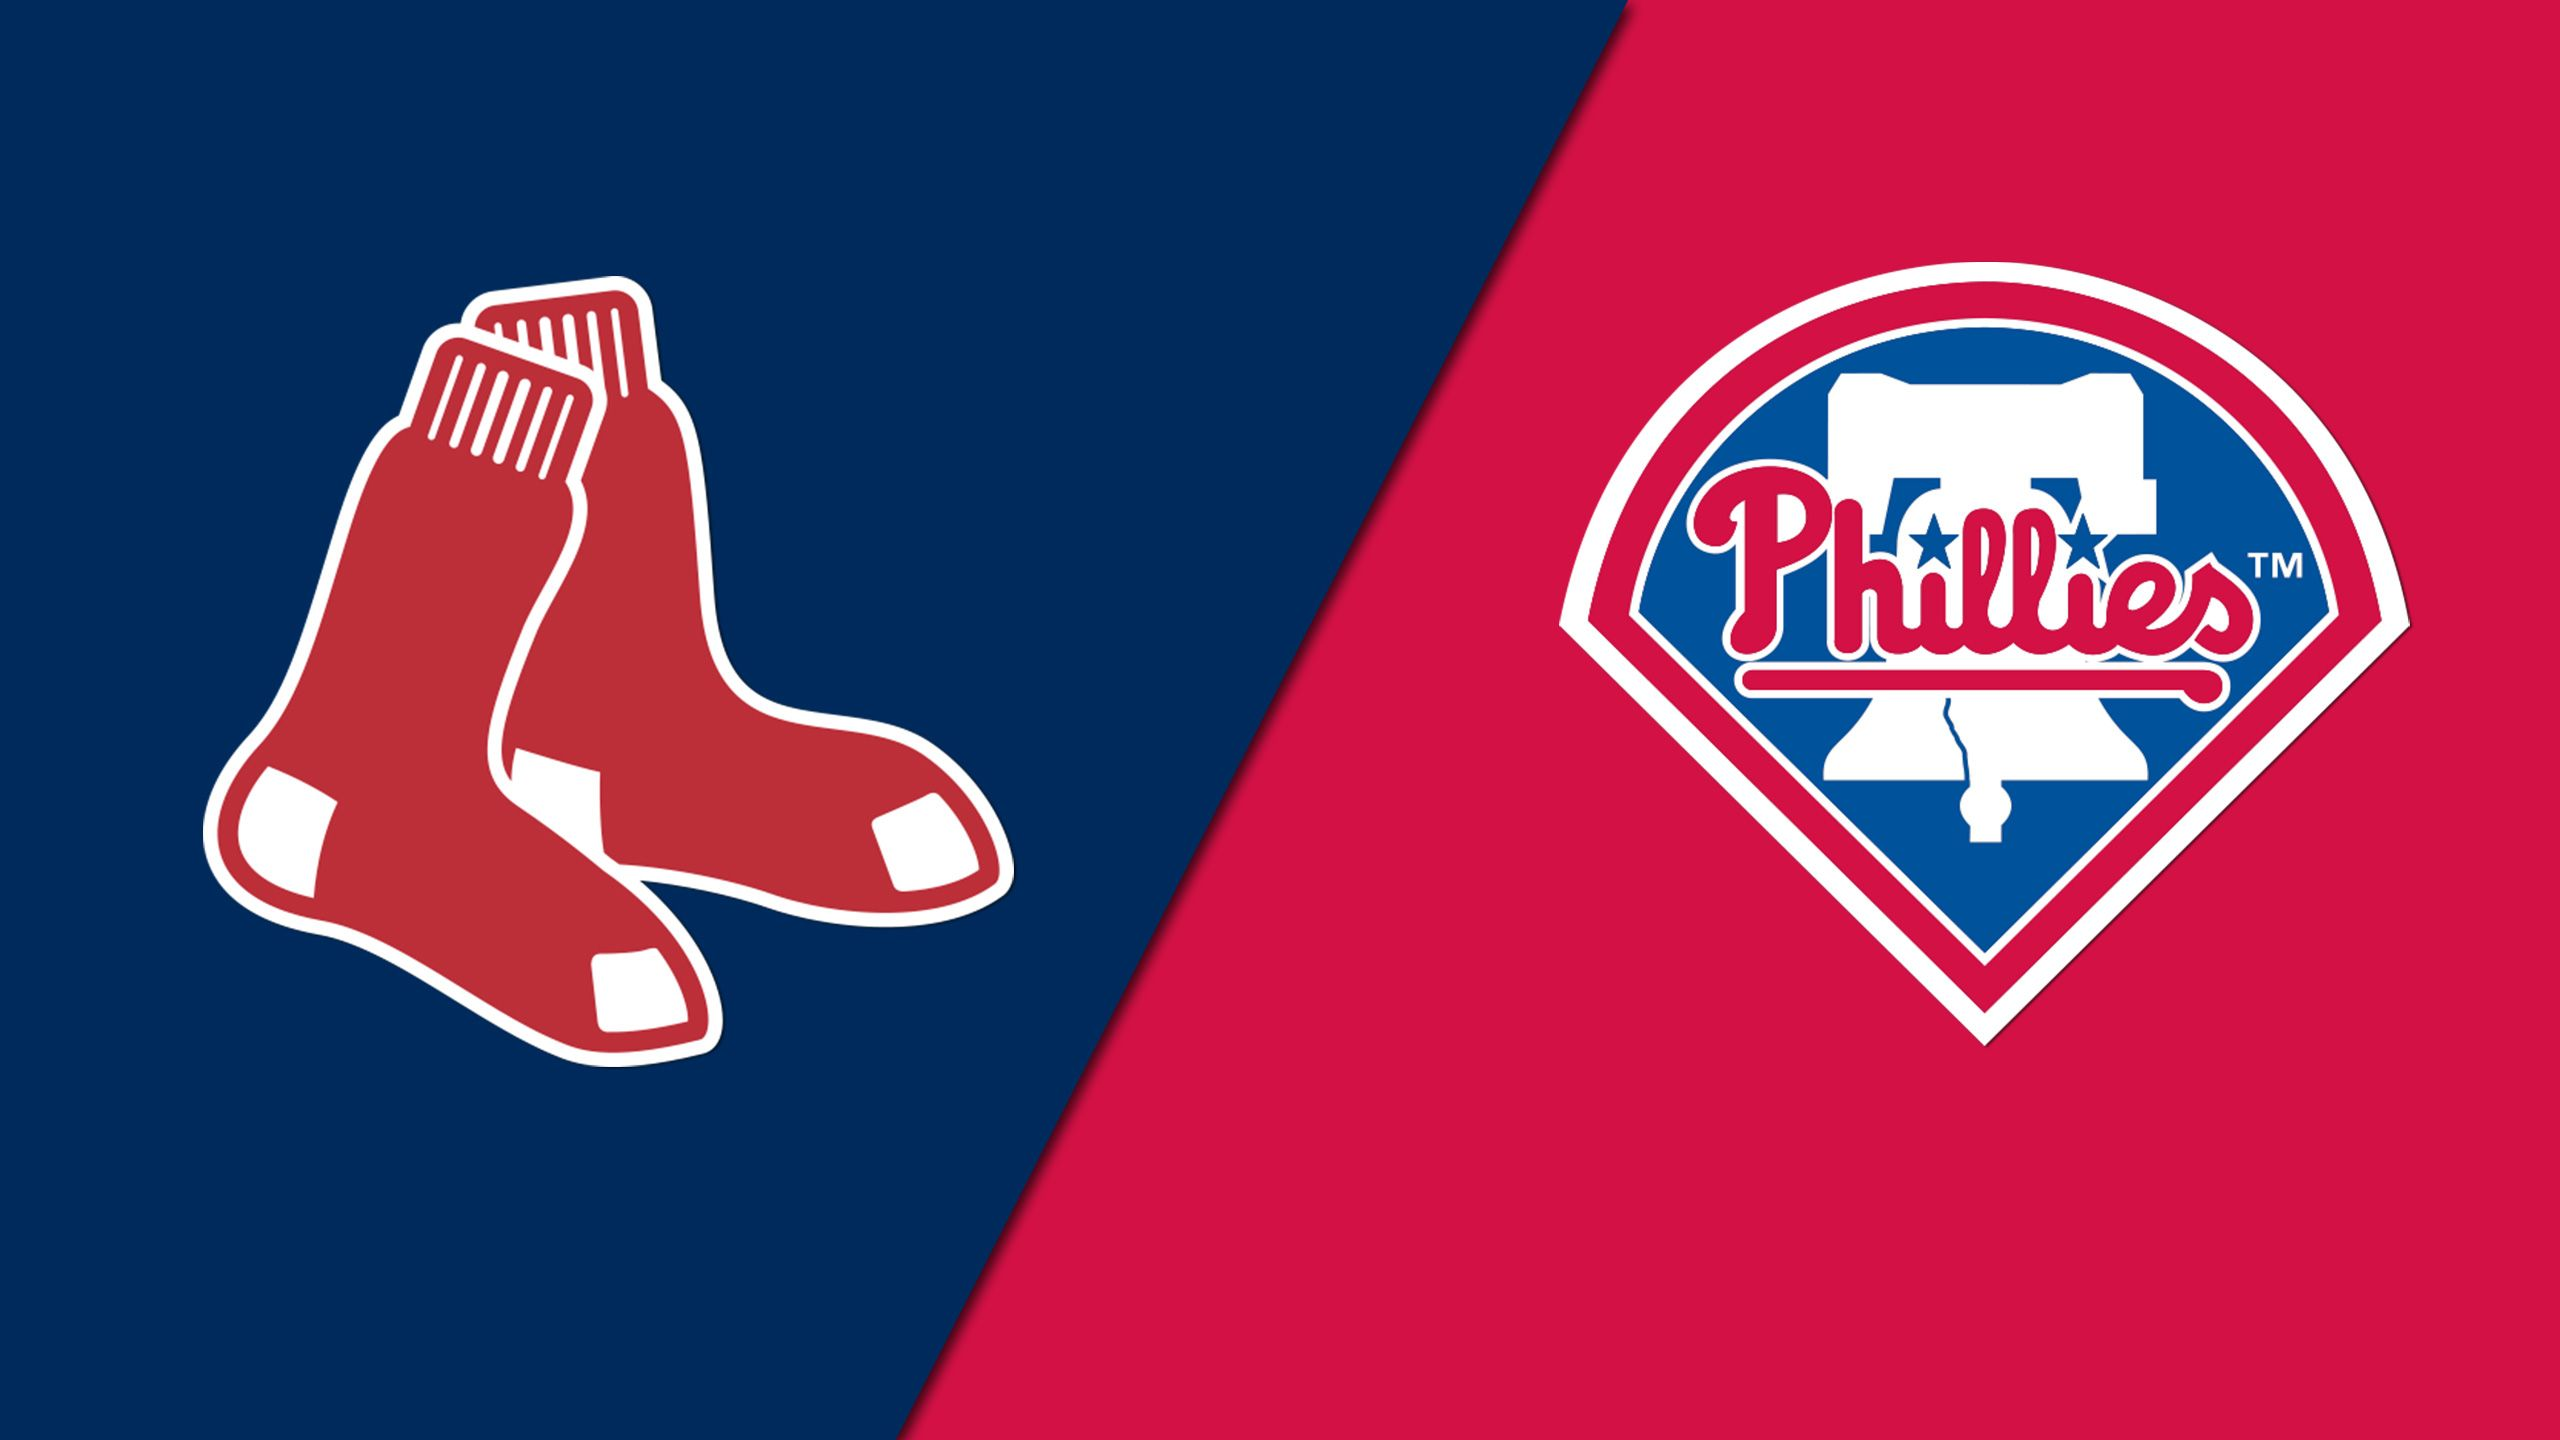 In Spanish - Boston Red Sox vs. Philadelphia Phillies